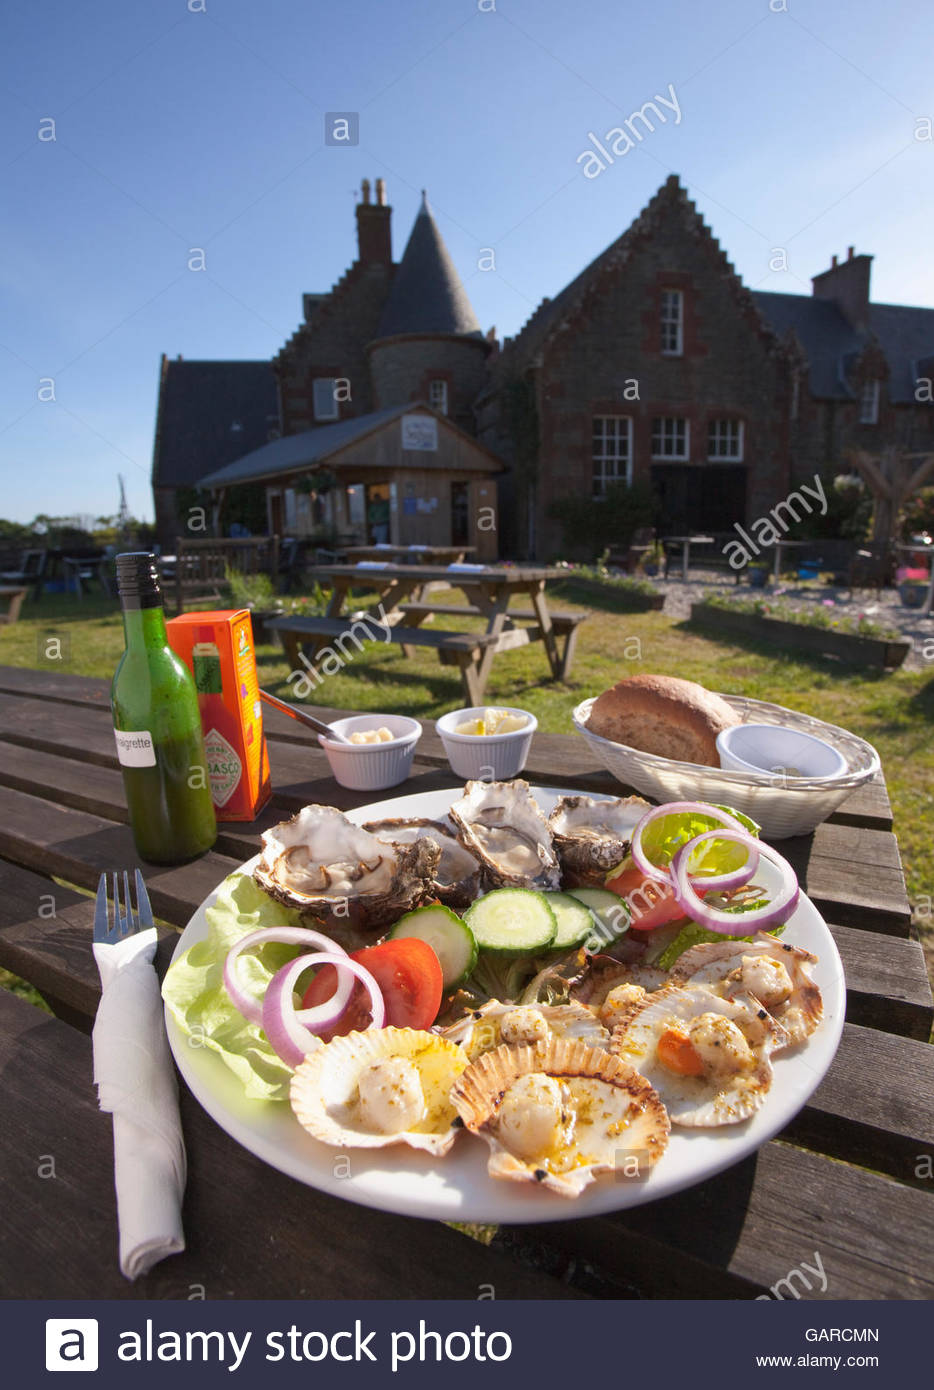 A platter of oysters, queen scallops and salad served at the Skipness Seafood Cabin, Kintyre, Argyll, Scotland. - Stock Image